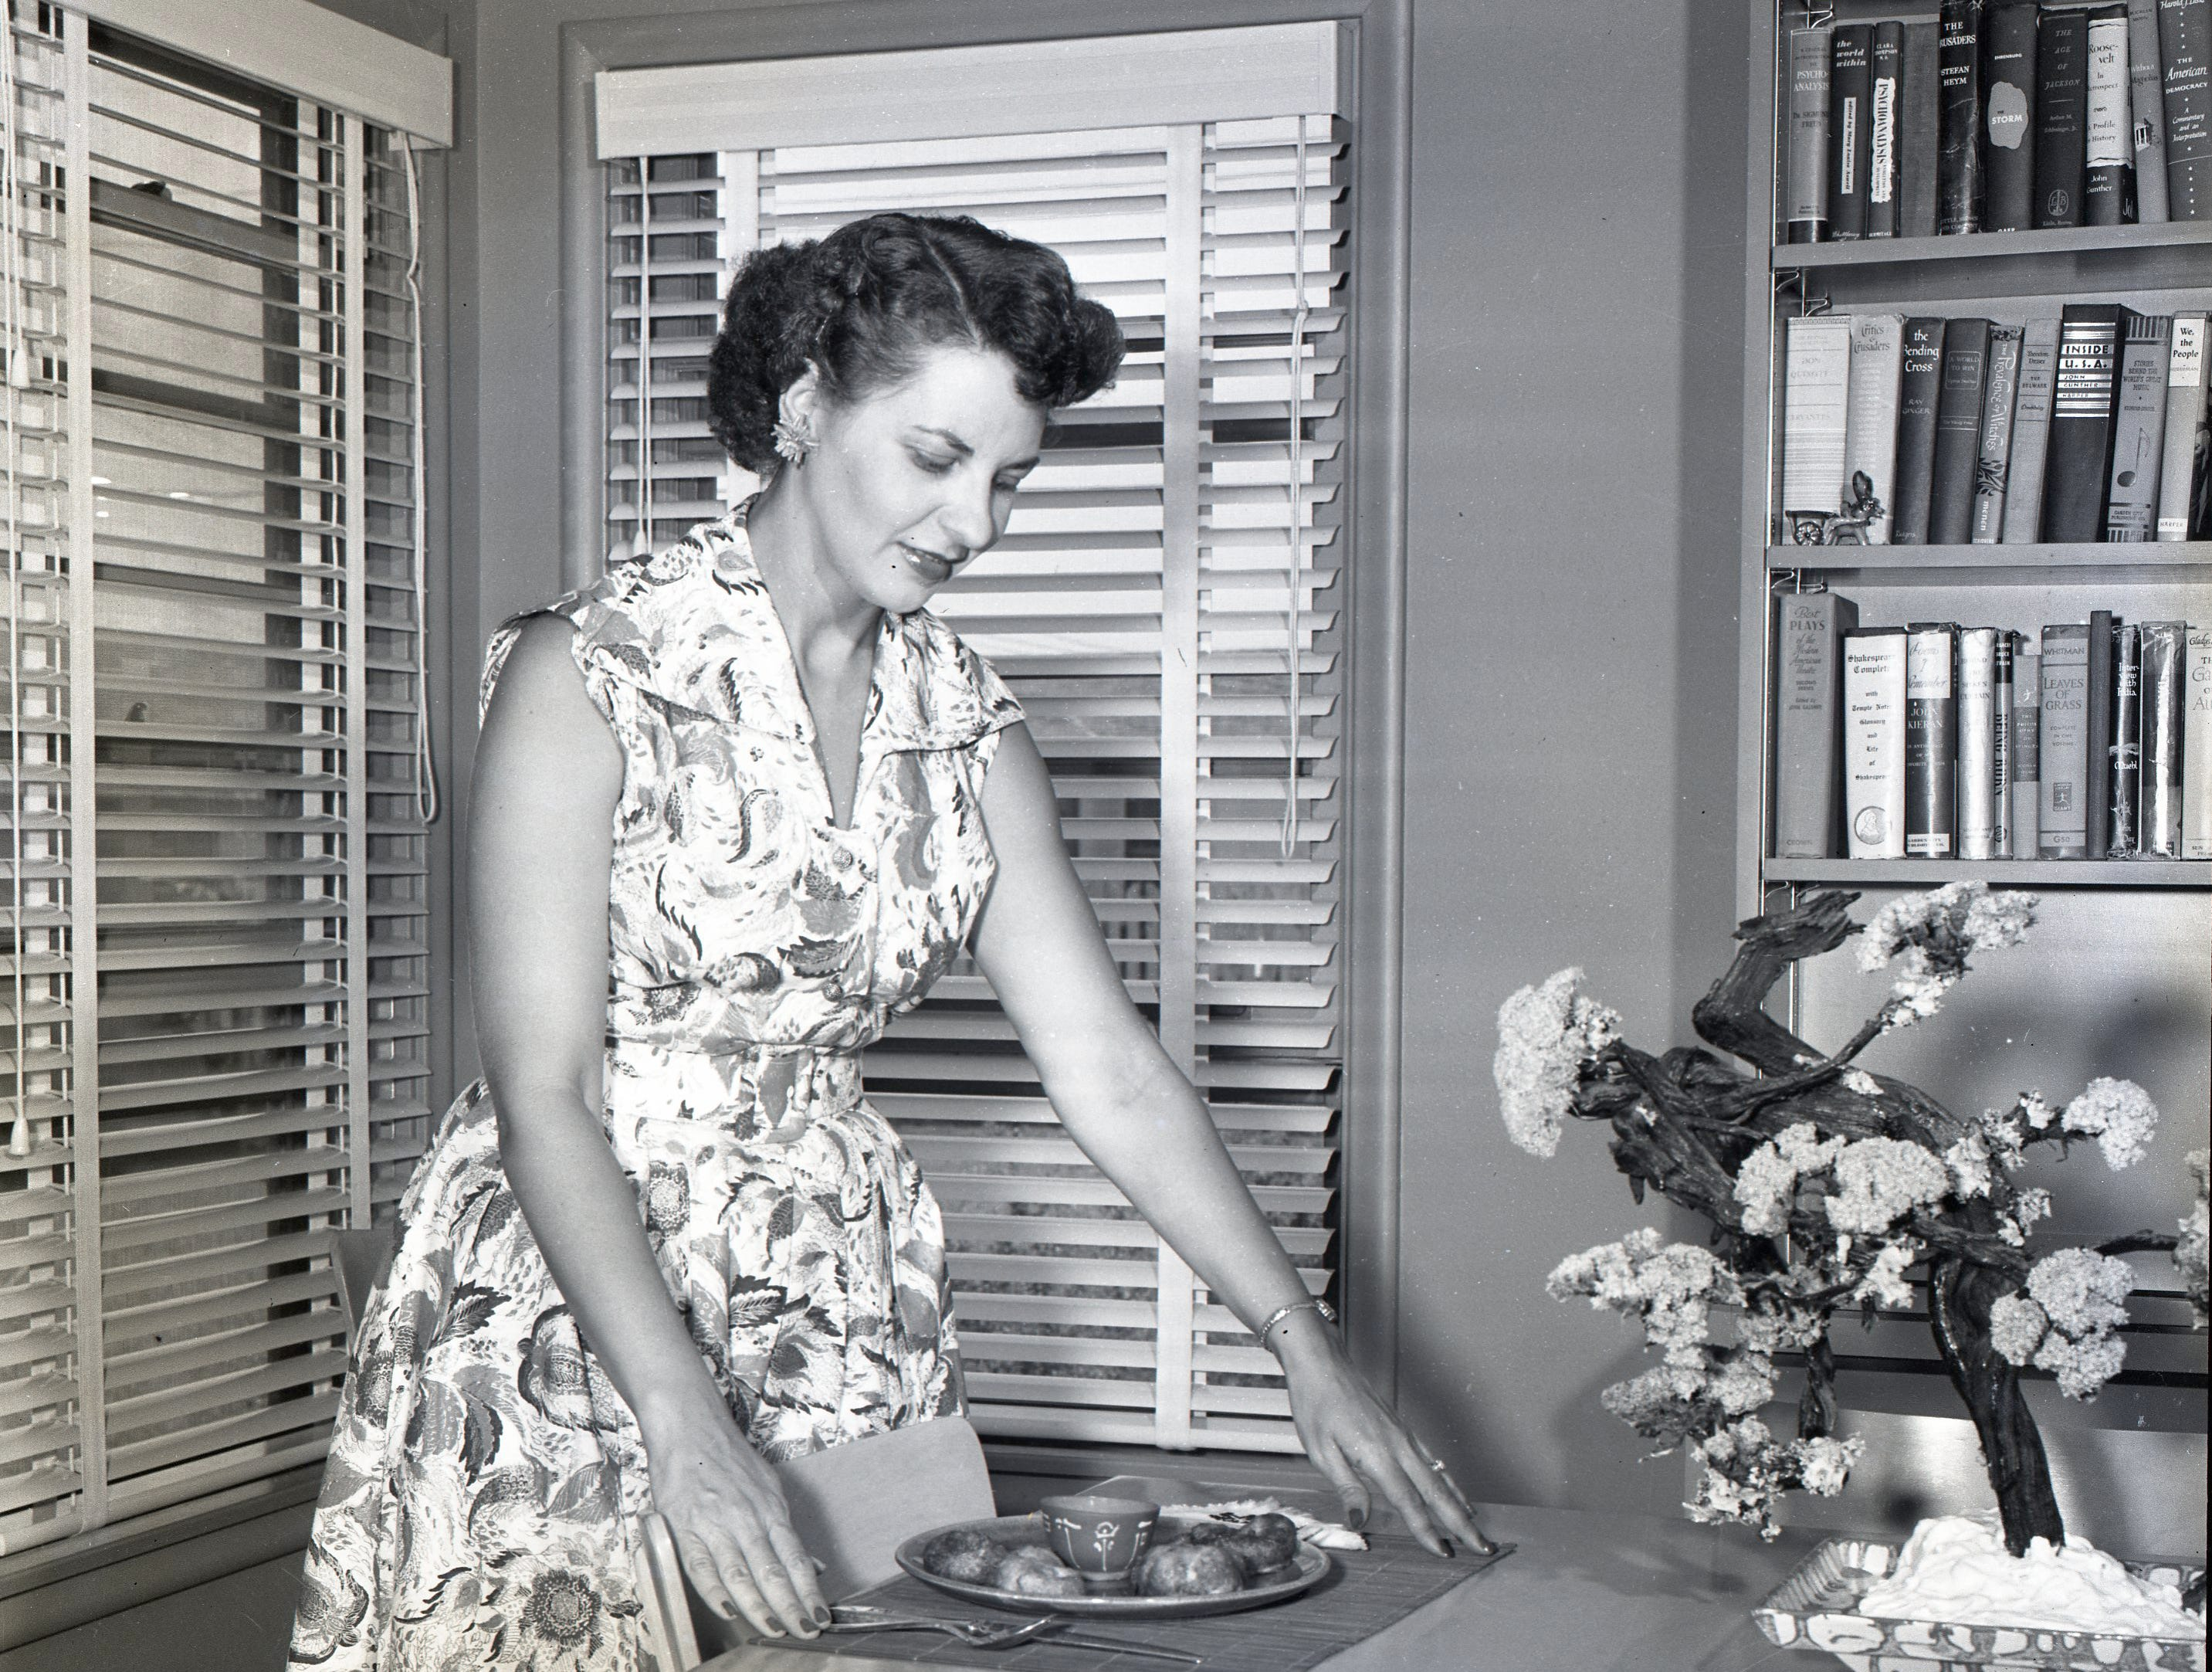 Mrs. Stanley C. Pearl places a dish of Chinese fried shrimp on the table at her home in June 1951. She contributed several Chinese recipes to the cookbook compiled by the Temple Beth El Sisterhood in 1951.